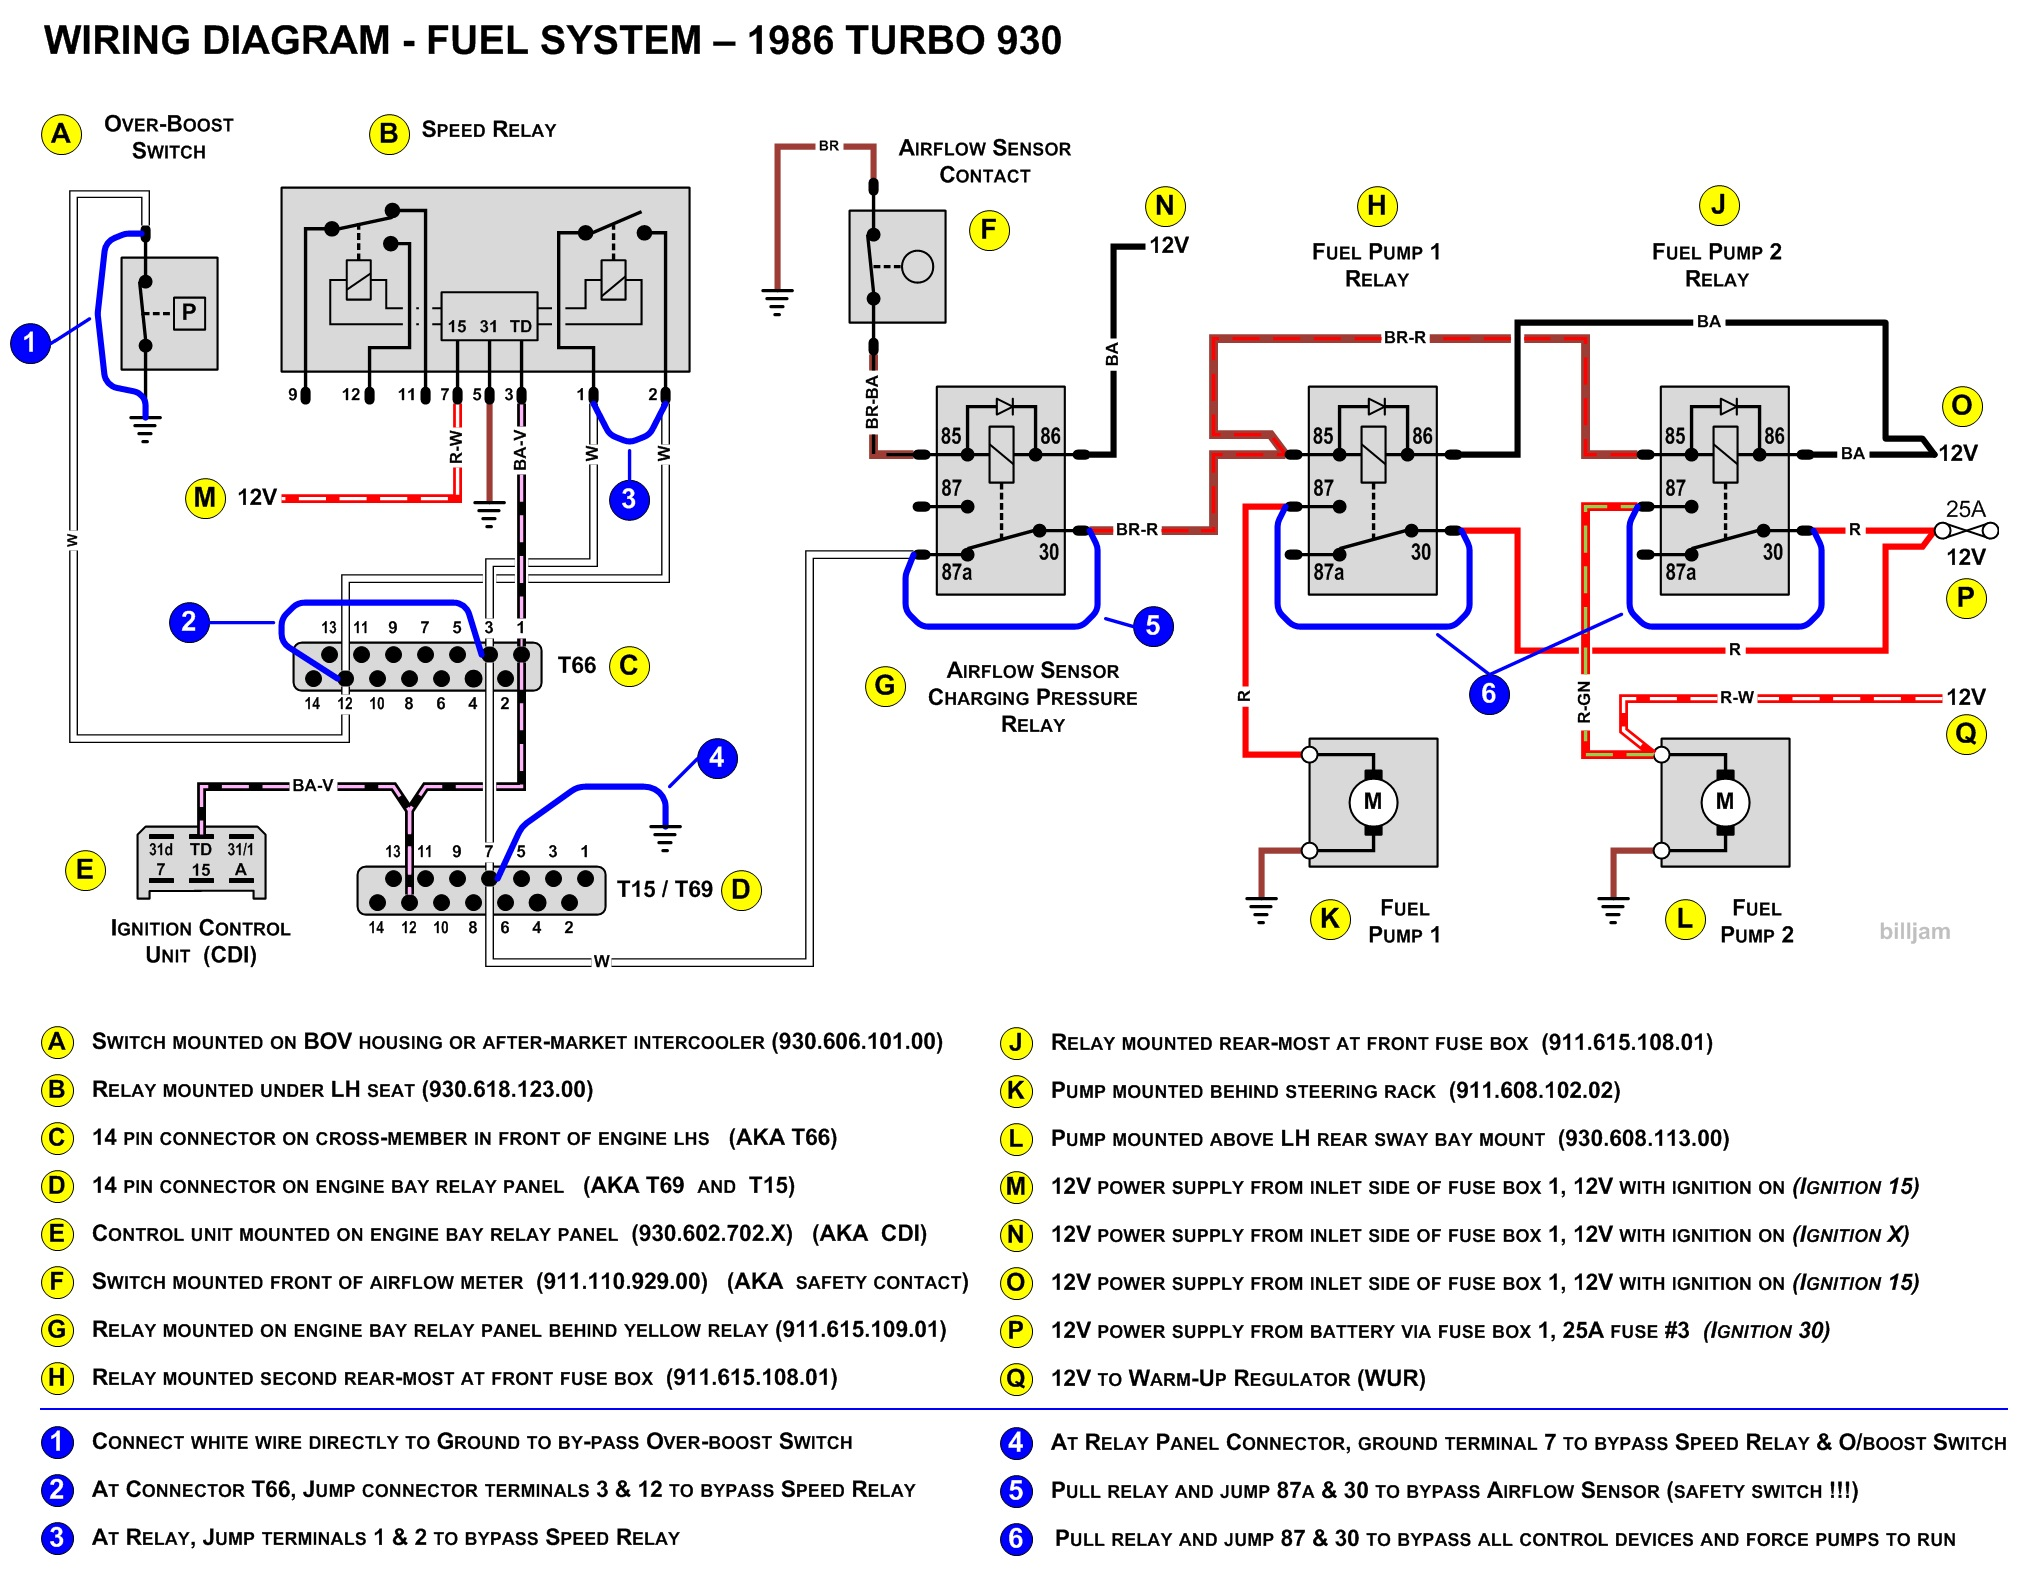 86 porsche 930 fuel system wiring diagram jumpers made a fuse box label for my 88 page 4 pelican parts technical bbs 1984 porsche 911 wiring diagram at creativeand.co